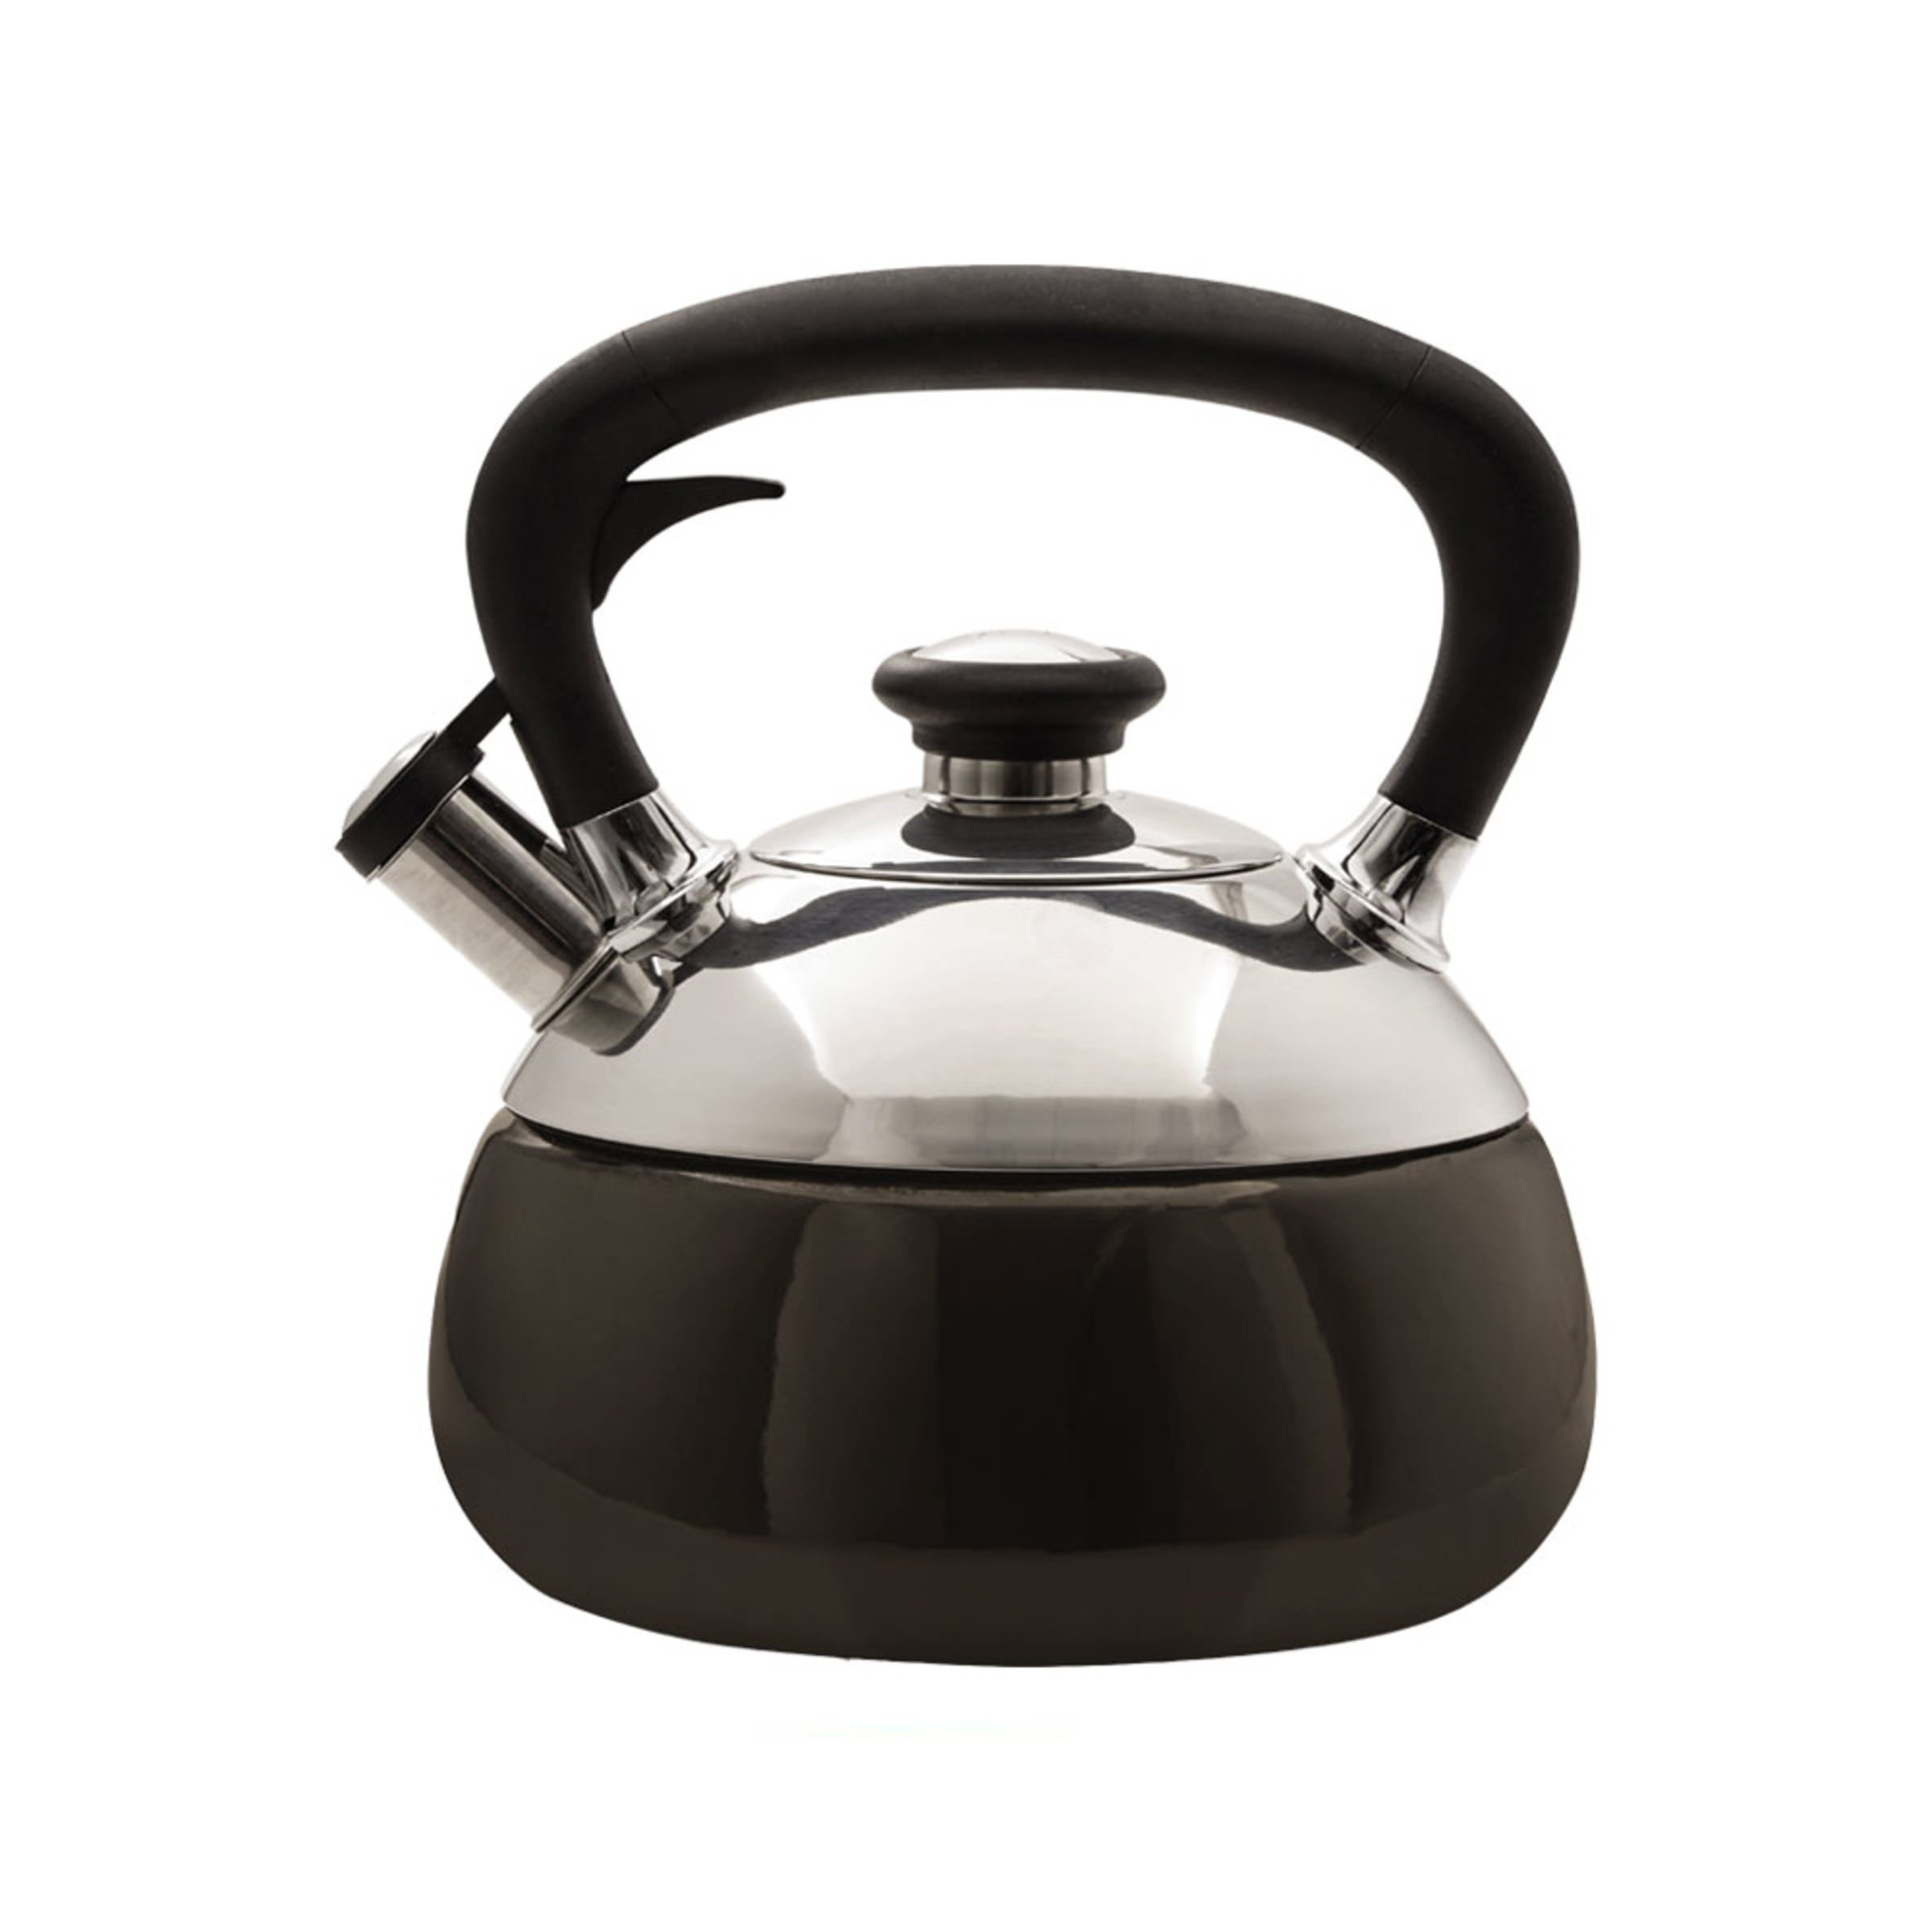 Copco 2 Quart Fusion Polished Stainless Steel Tea Kettle